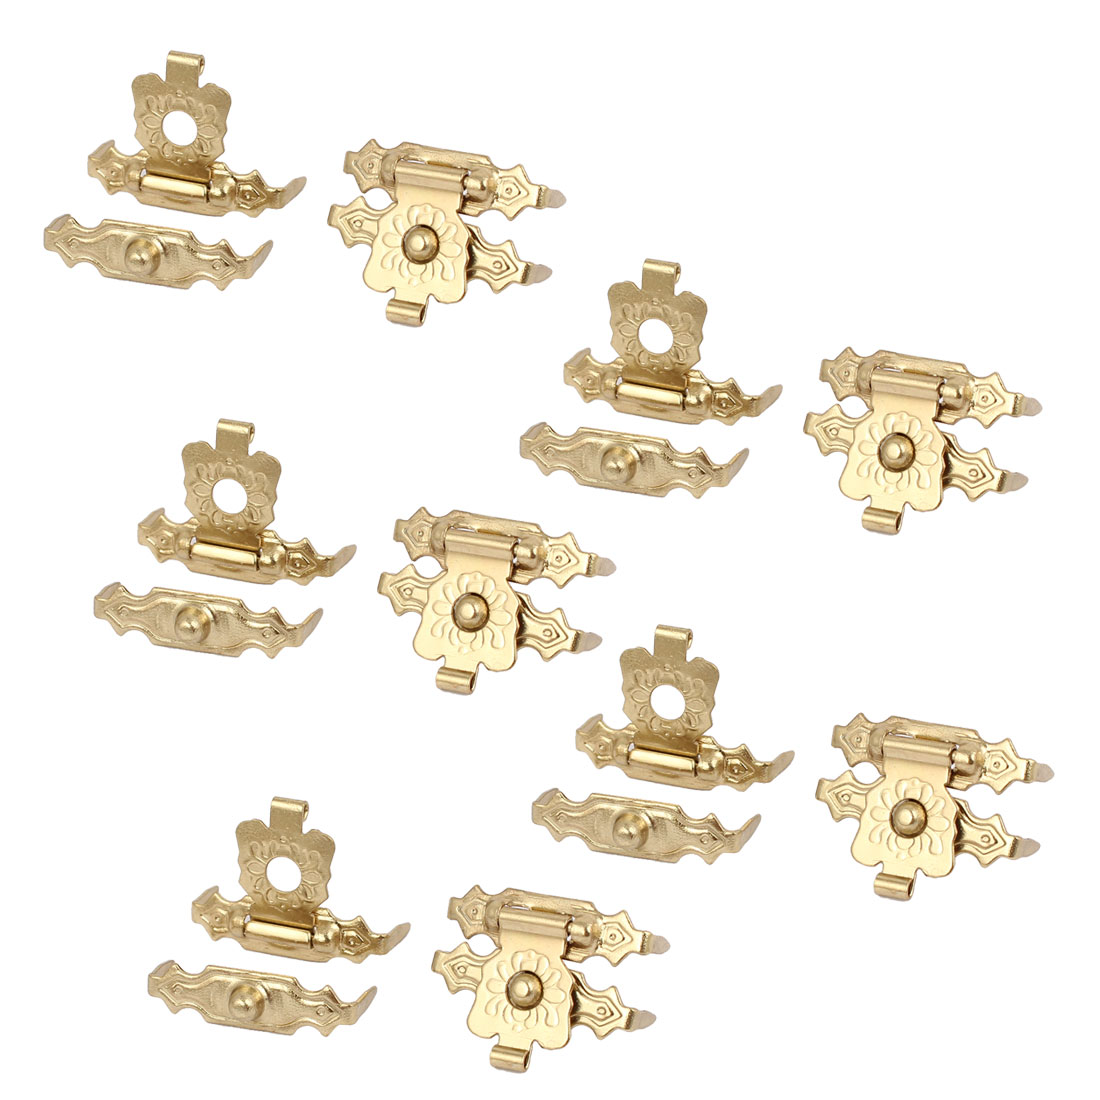 Box Wooden Case Metal Hasp Hook Lock Lid Latch Catch Gold Tone 10pcs